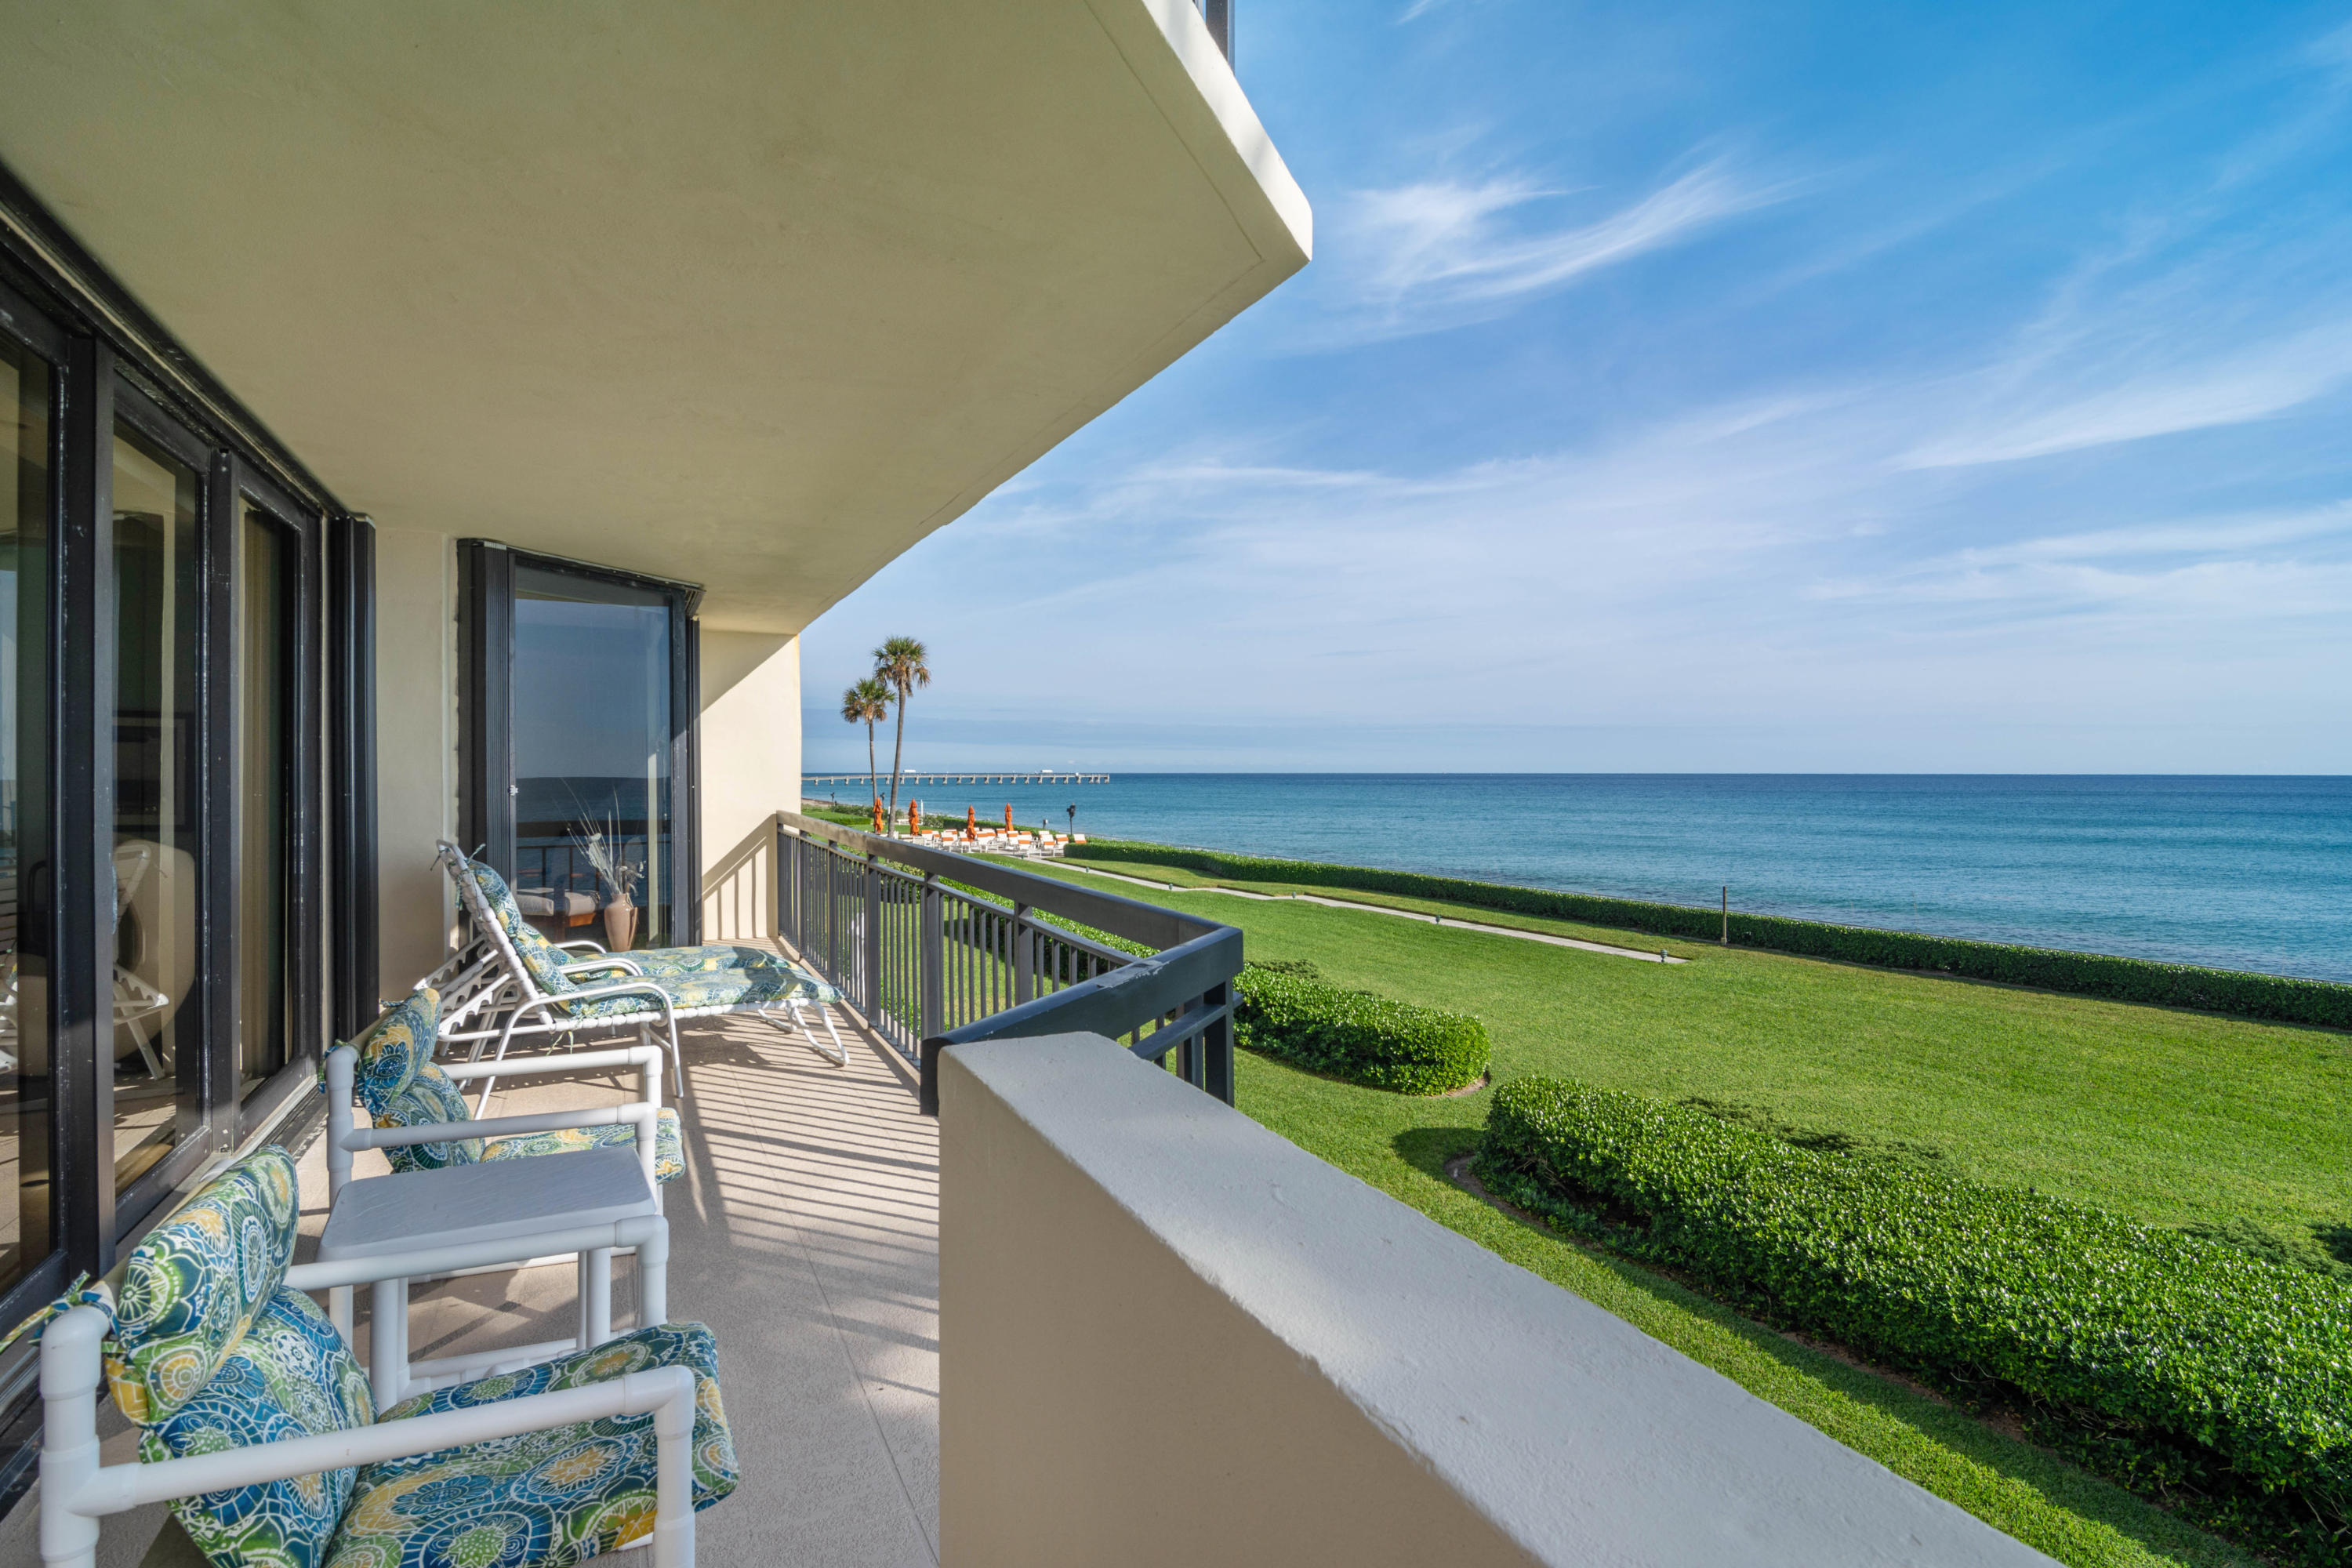 3140 S Ocean Boulevard, 203s - Palm Beach, Florida